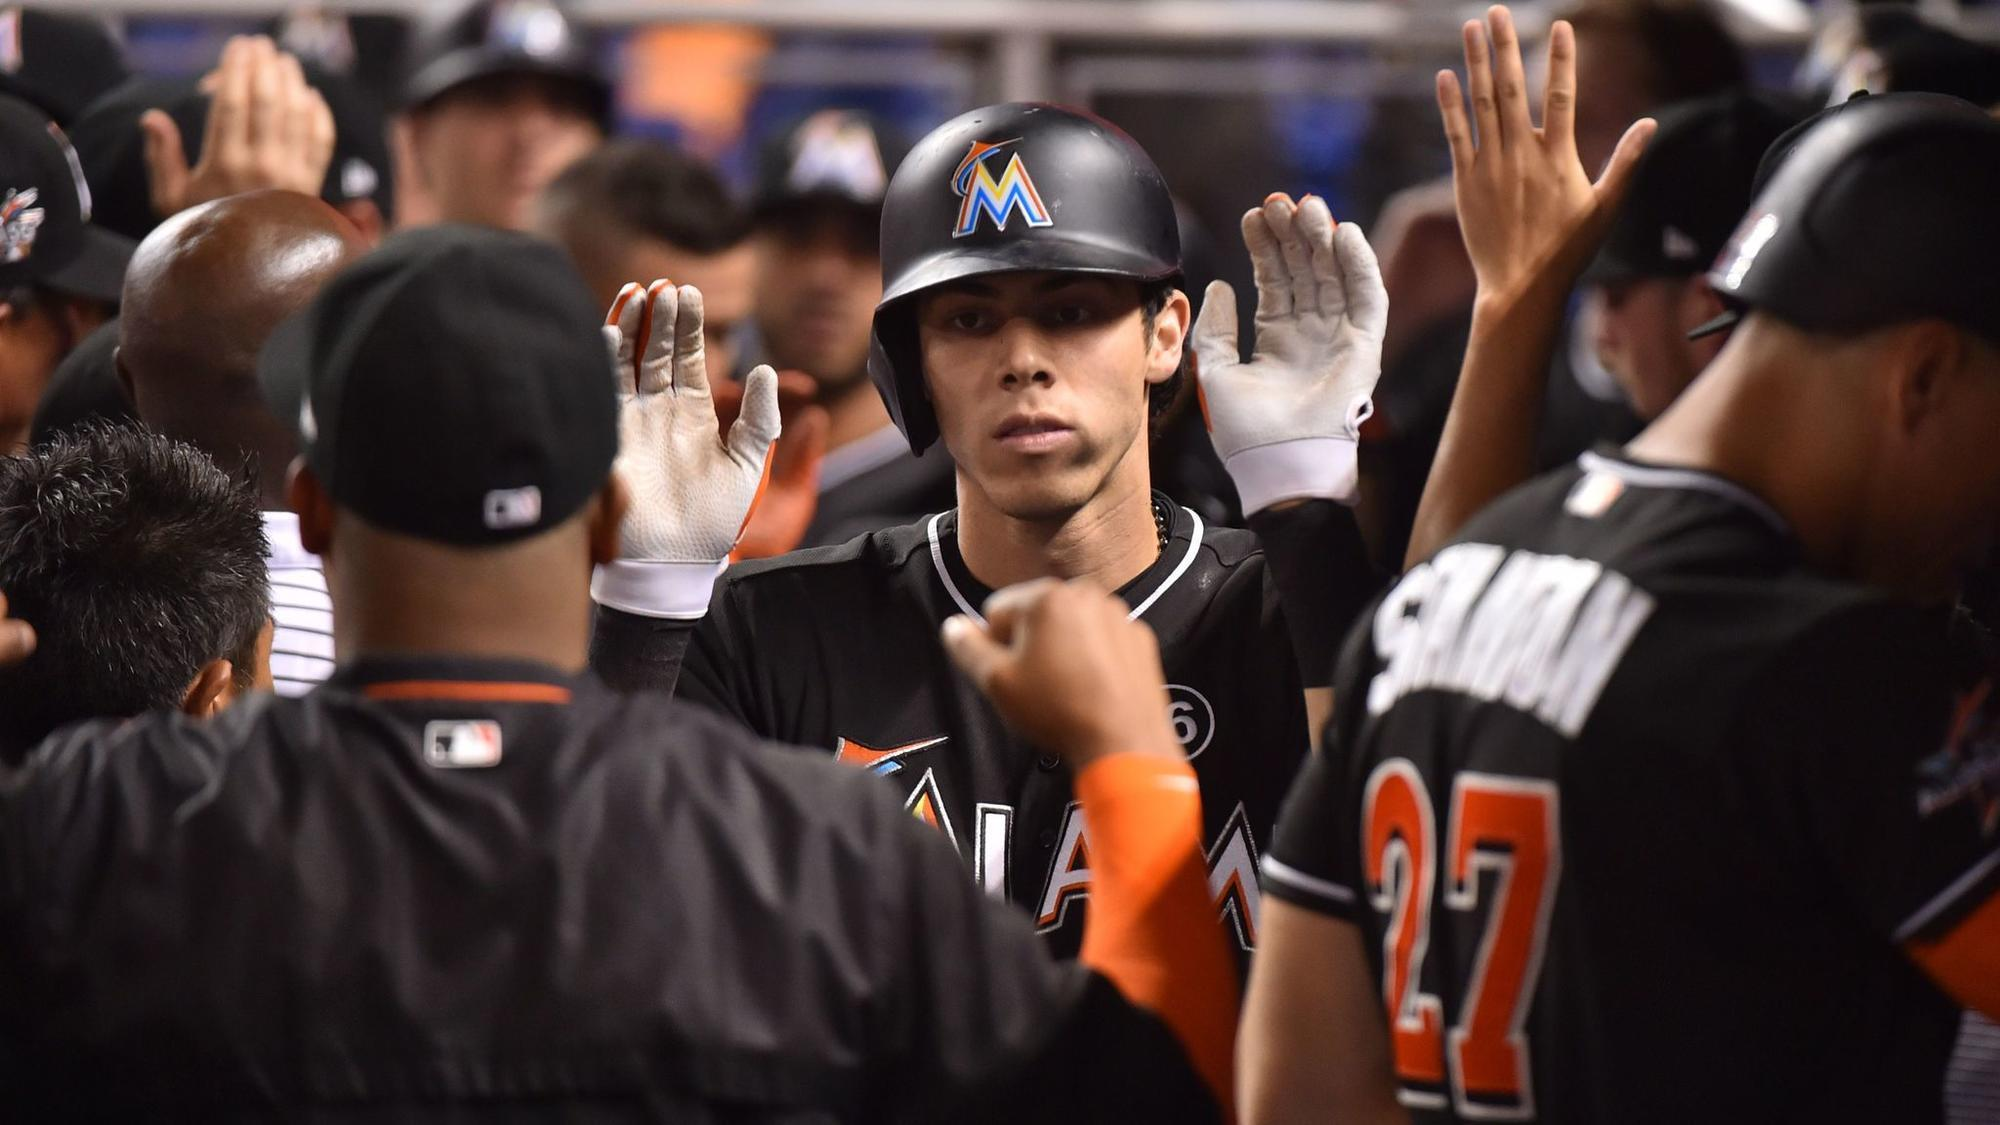 Fl-sp-marlins-christian-yelich-relationship-20180119